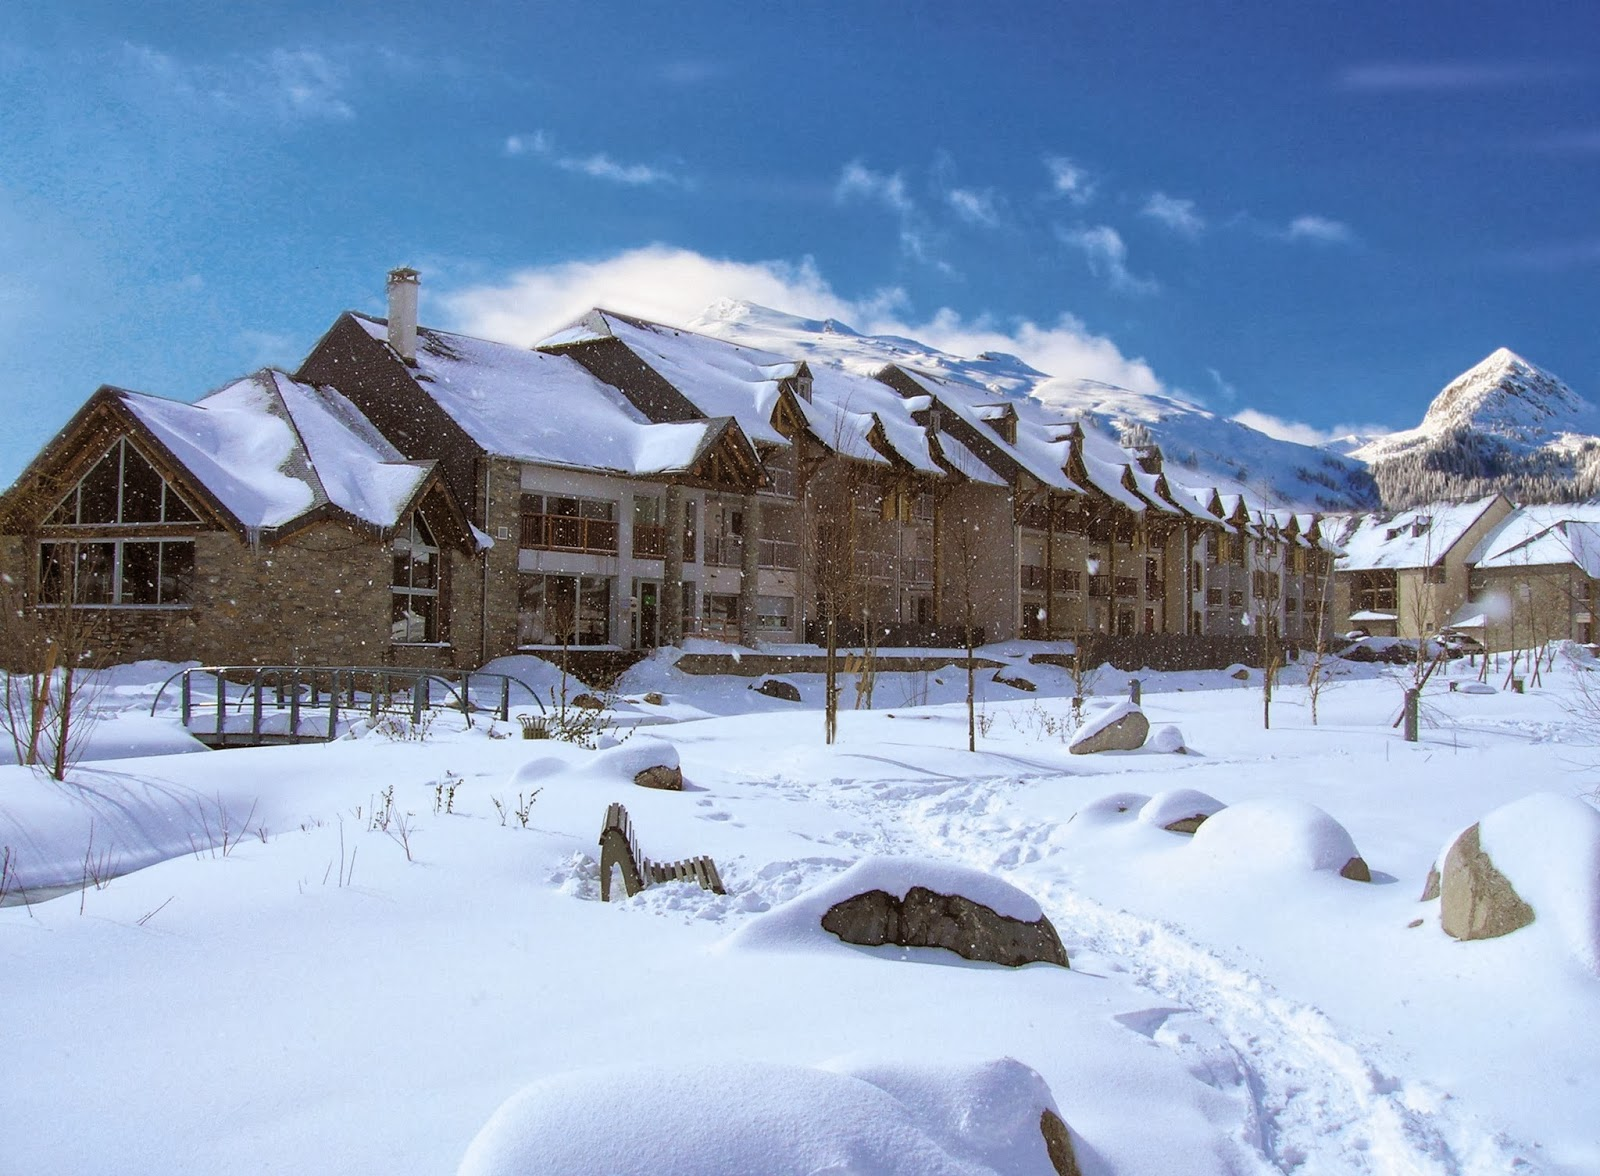 Self catered accommodation, L'Ardoisiere in Saint Lary